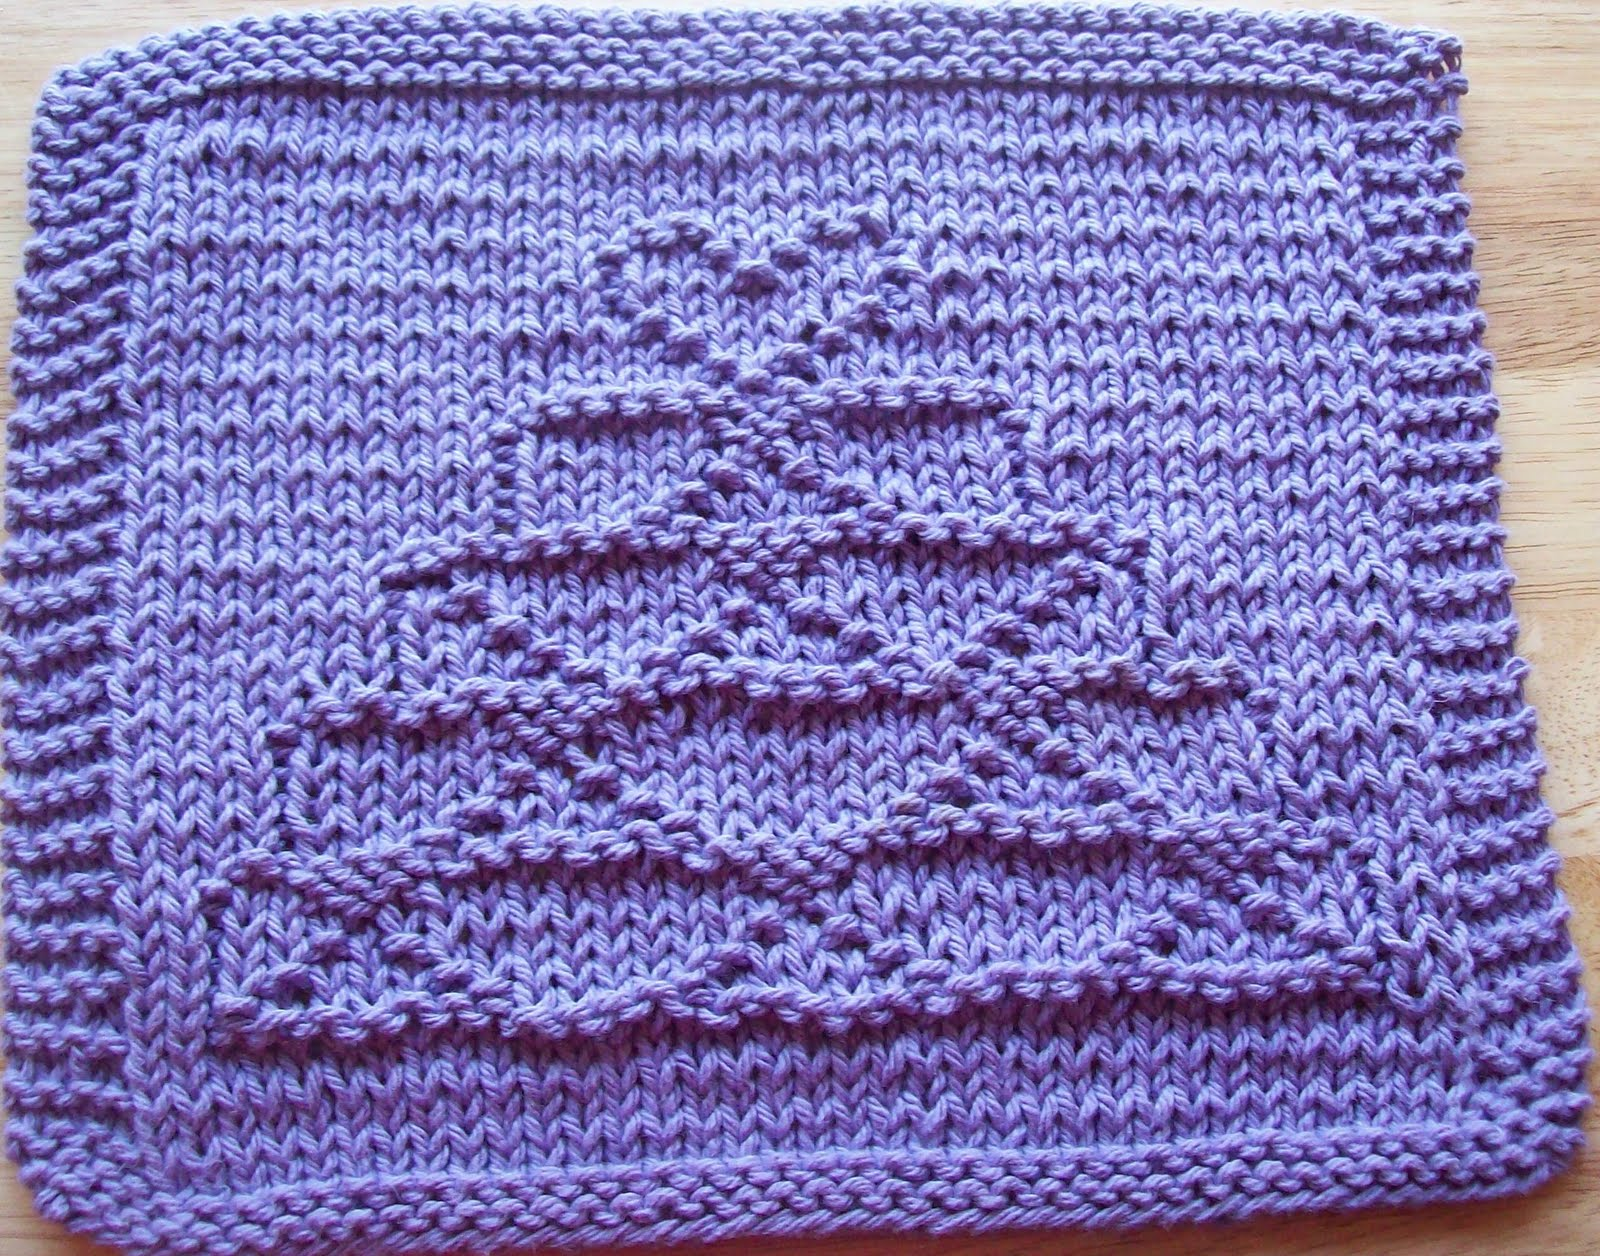 Knitted Dishcloth Patterns Wedding : DigKnitty Designs: Another Wedding Cake Knit Dishcloth Pattern